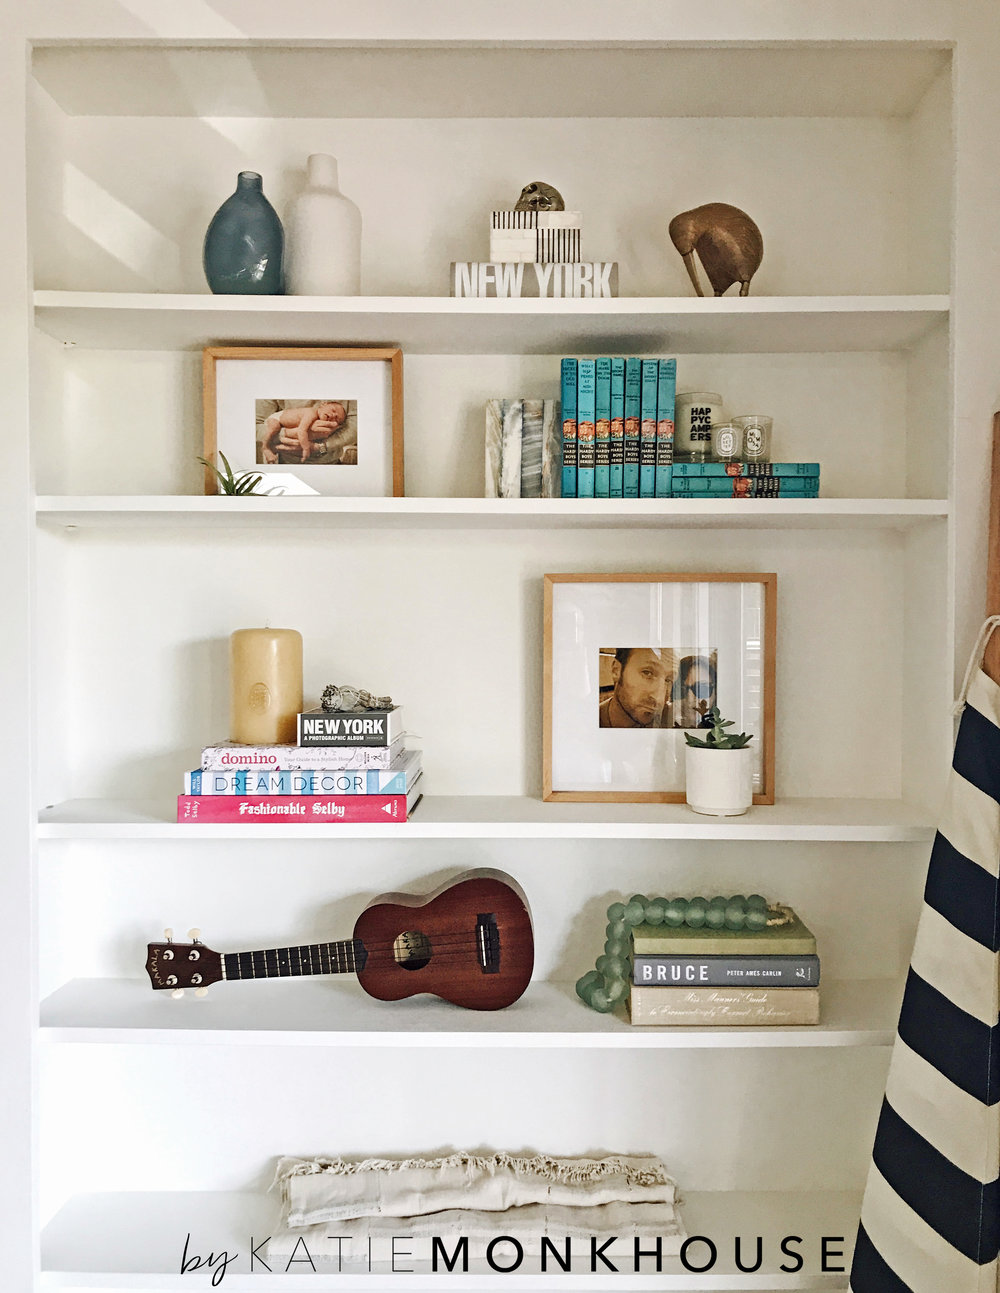 My living room bookcase is ever evolving. TRICK : Put textiles or folded blankets on the lower shelves for 'kid proofing'!